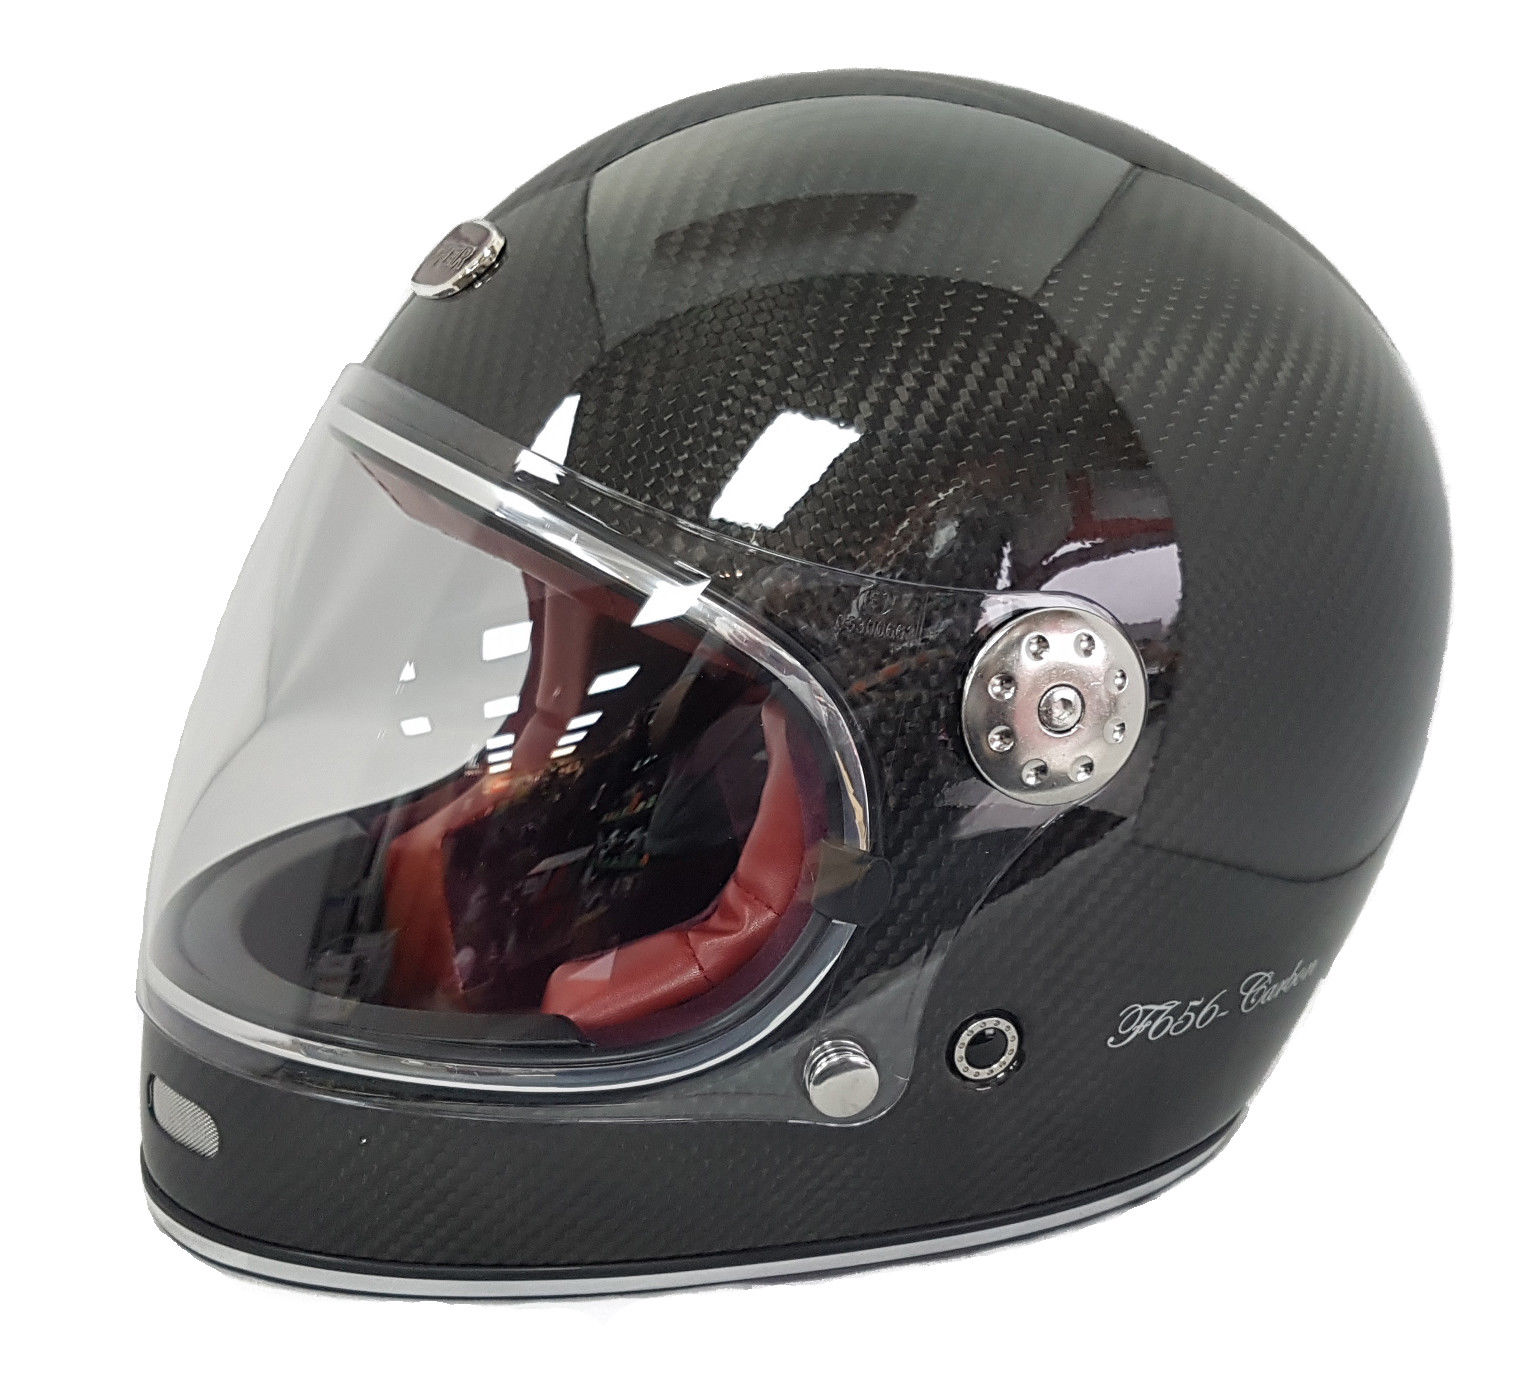 Carbon Fiber Motorcycle Helmets >> Viper F656 Carbon Fibre Retro Full Face Motorcycle Helmet